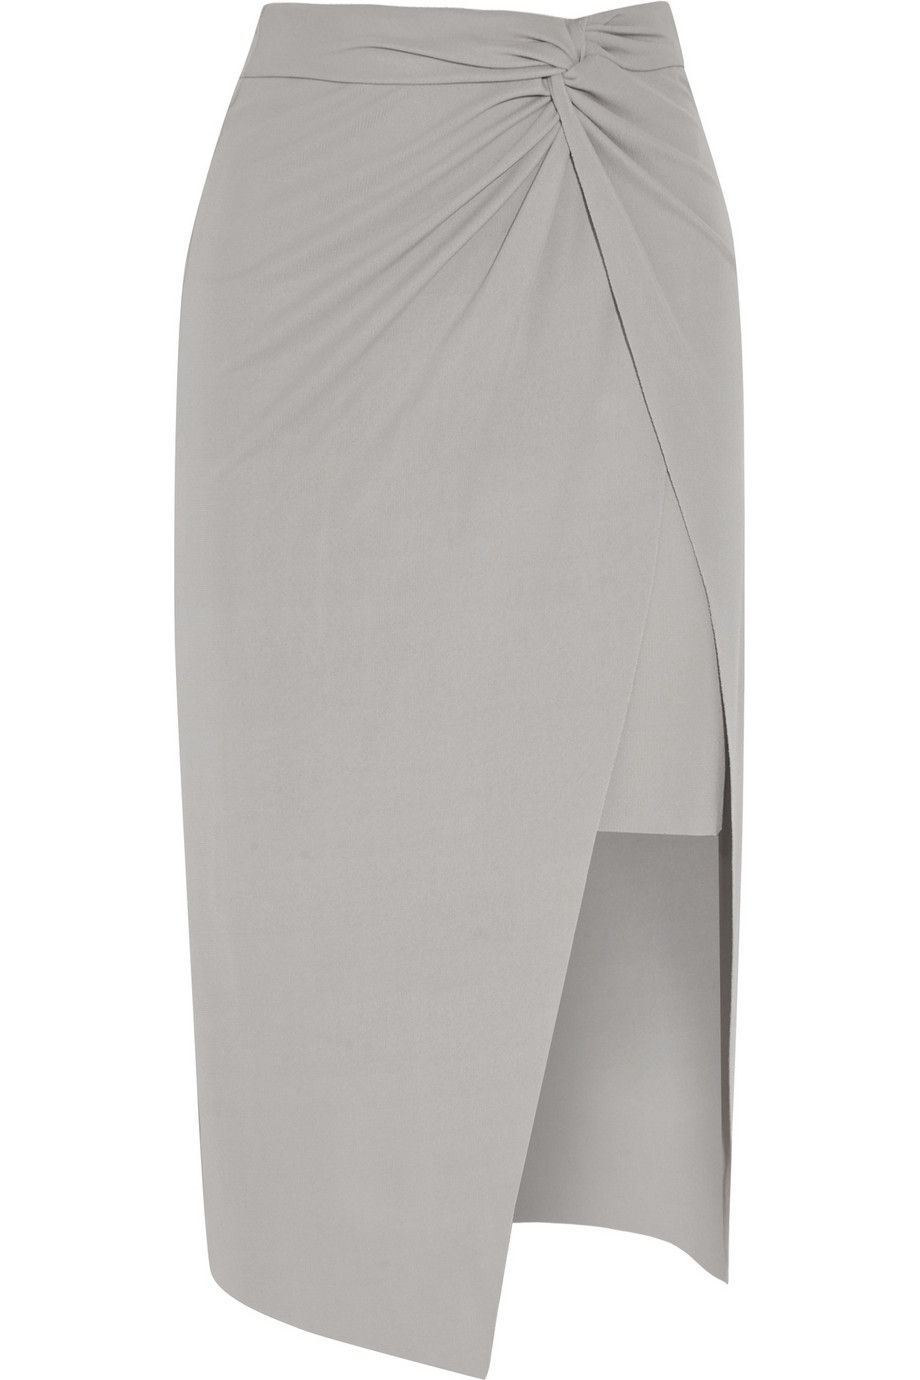 Helmut LangHelix knotted jersey-crepe skirtclose up